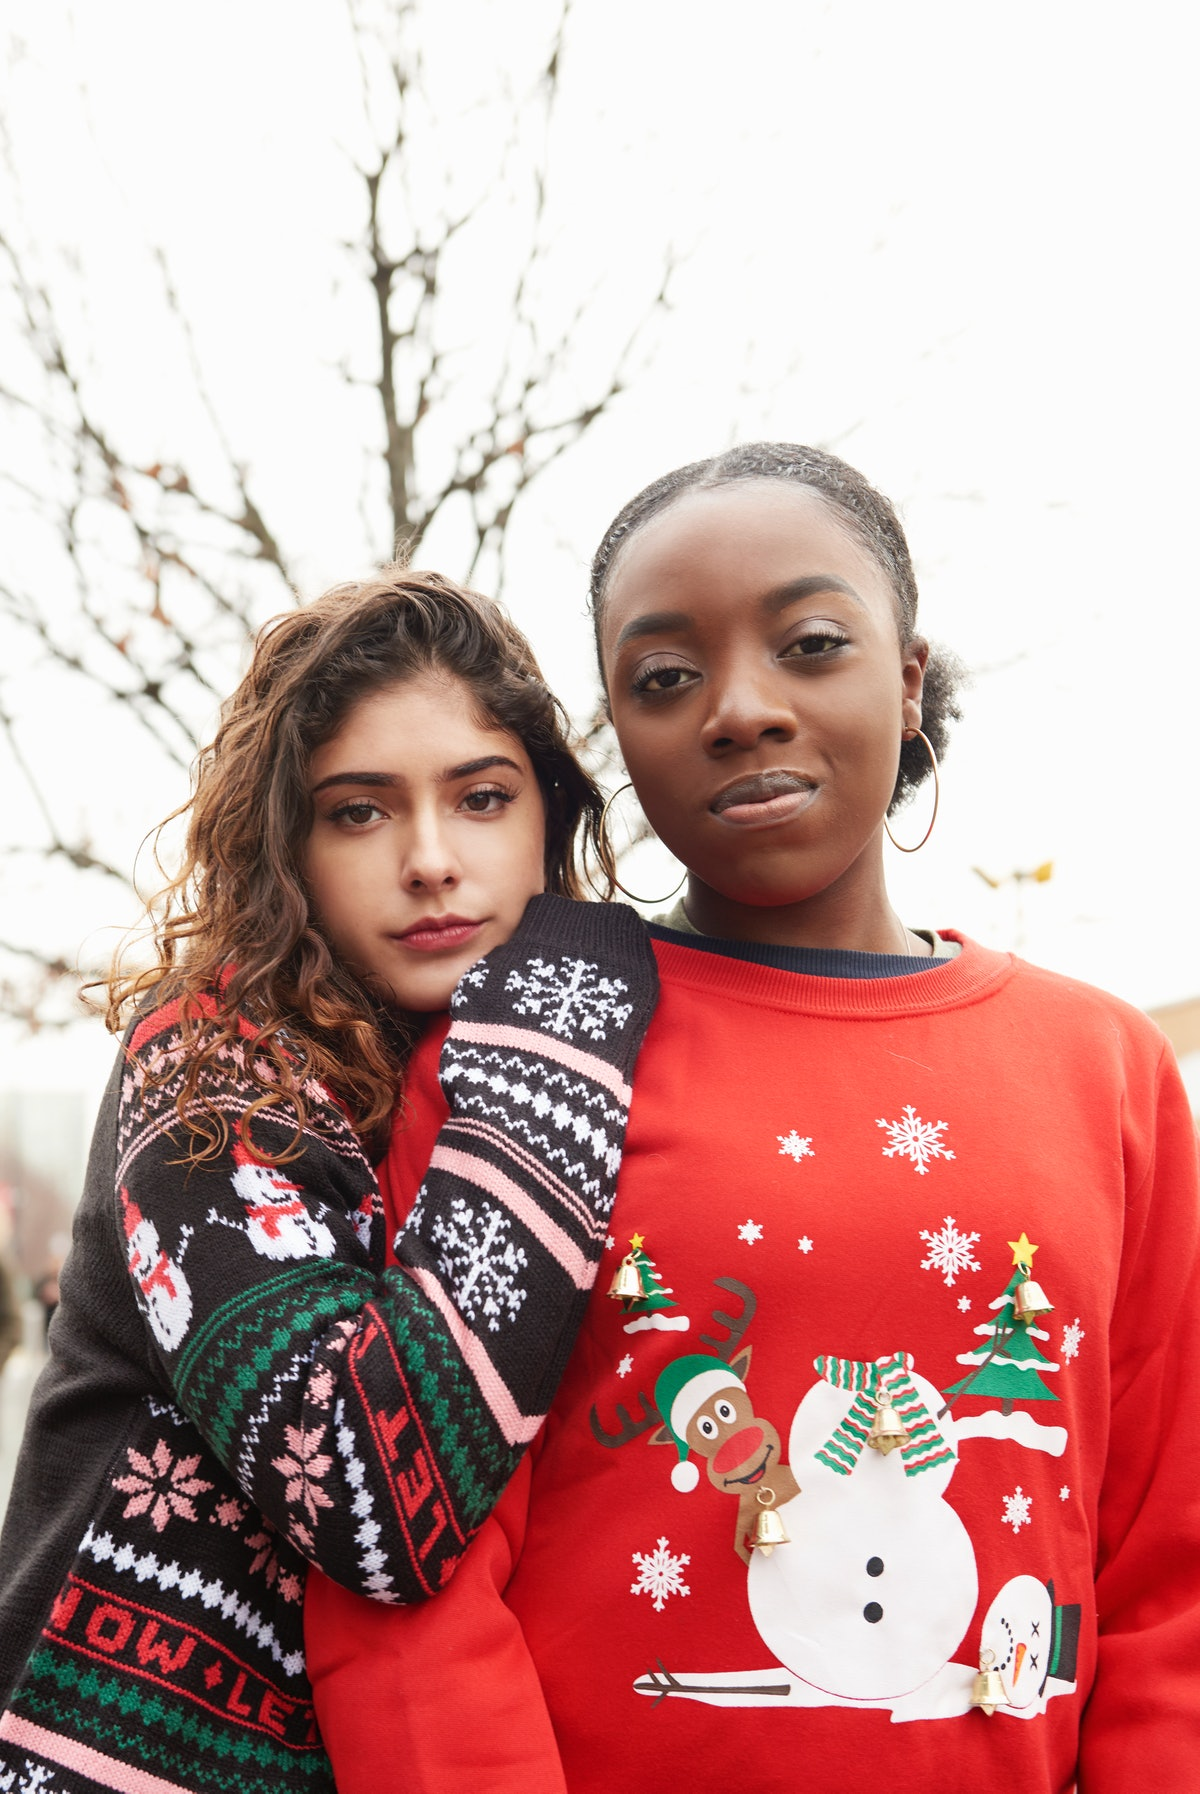 Friends posing in Christmas sweaters